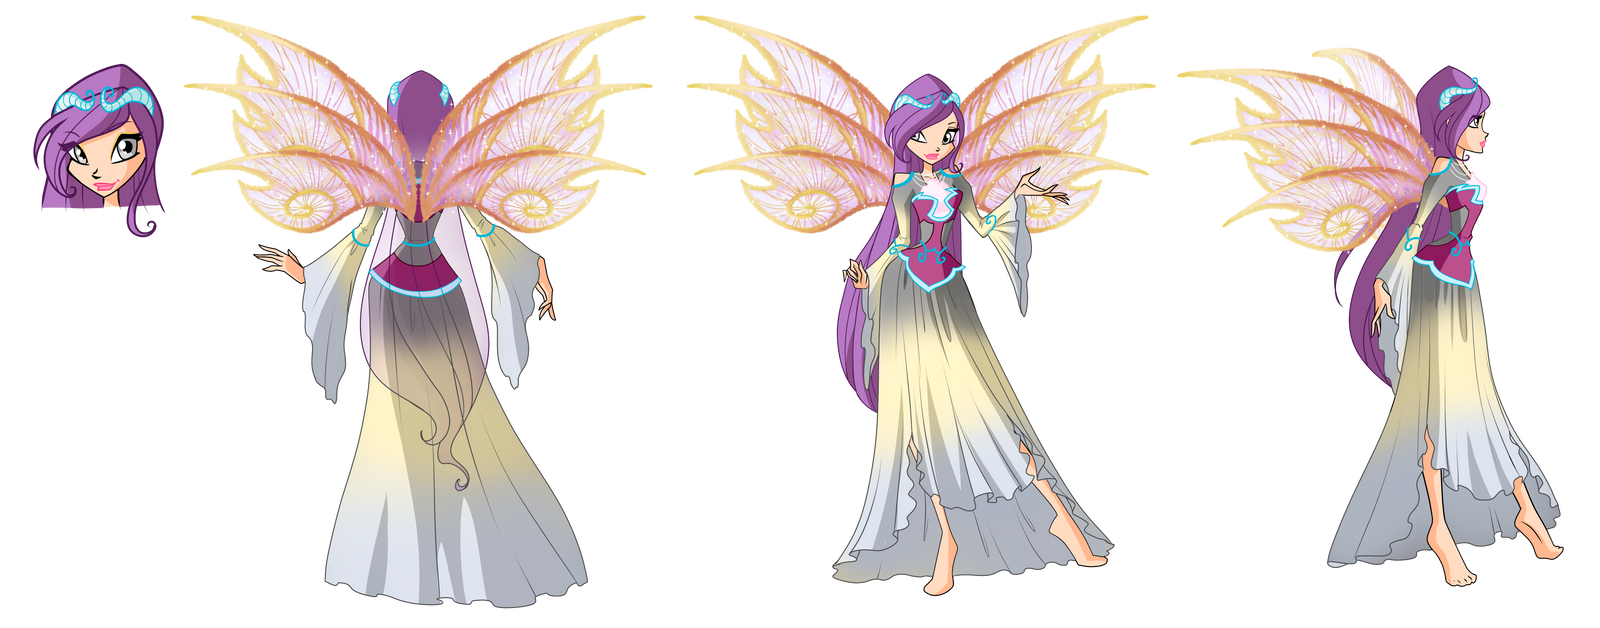 Tine Tiefix Reference By Forgotten-By-Gods On DeviantArt